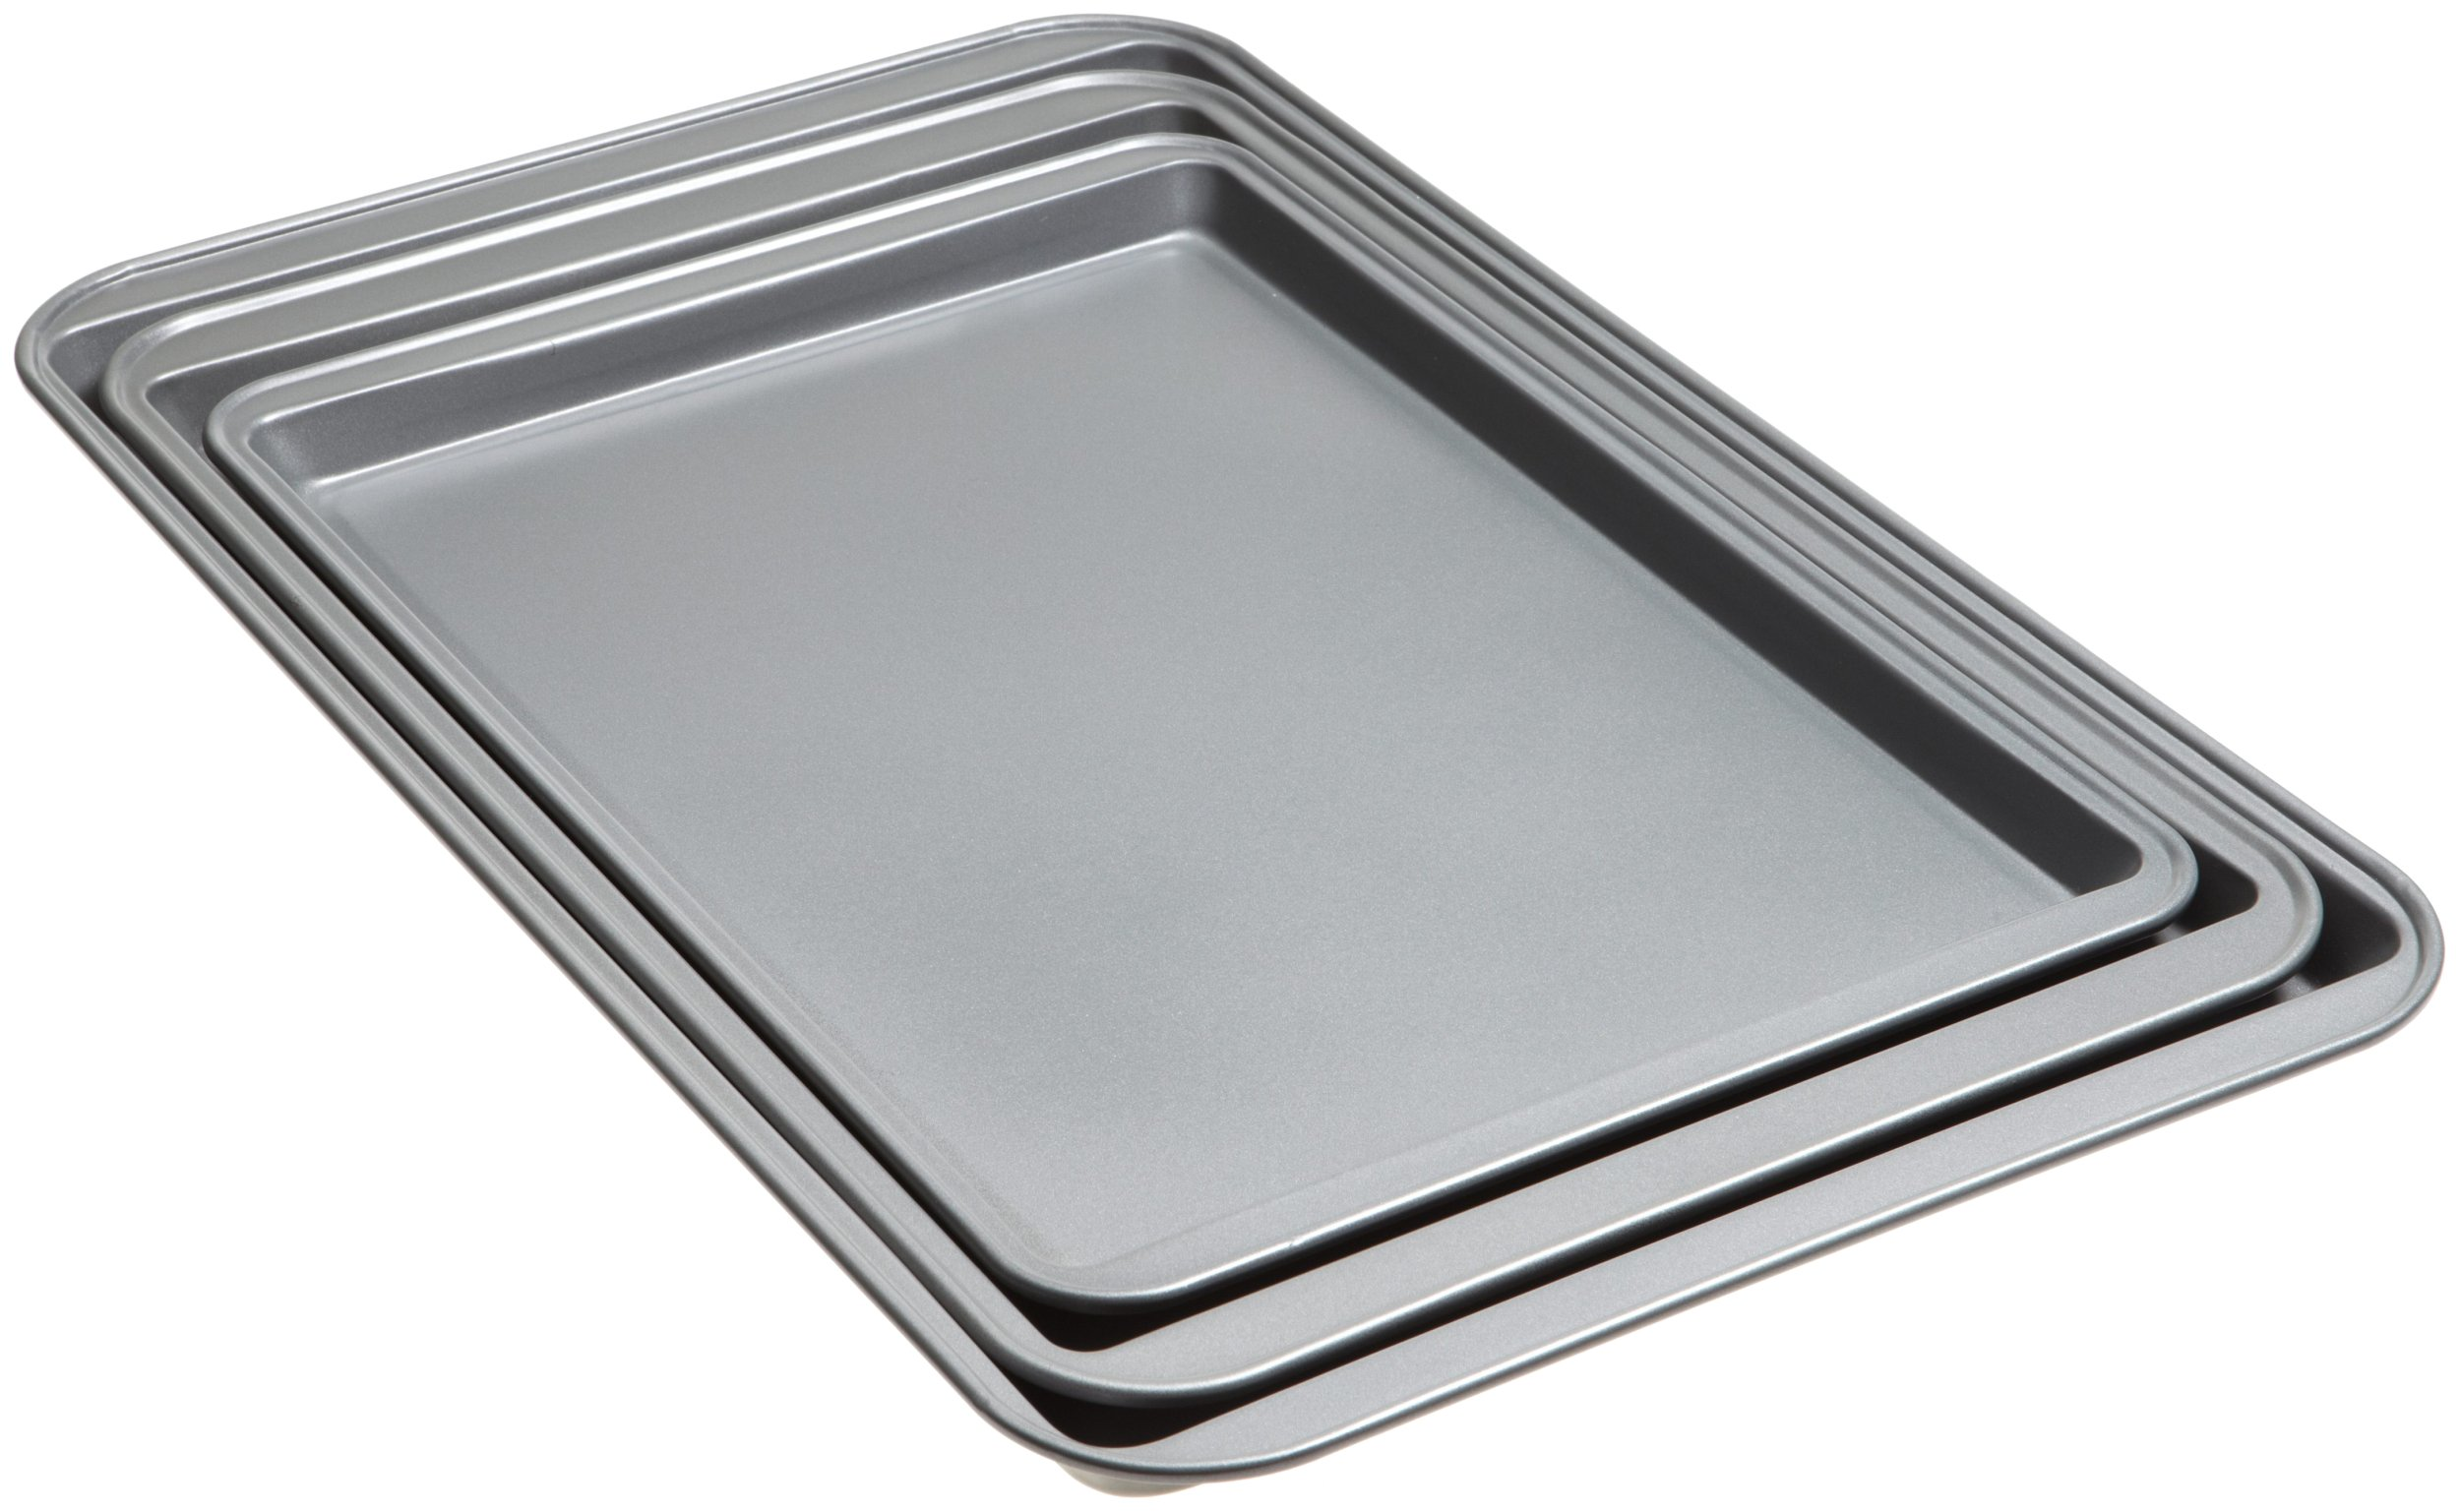 Good Cook Set Of 3 Non-Stick Cookie Sheet by Good Cook (Image #2)